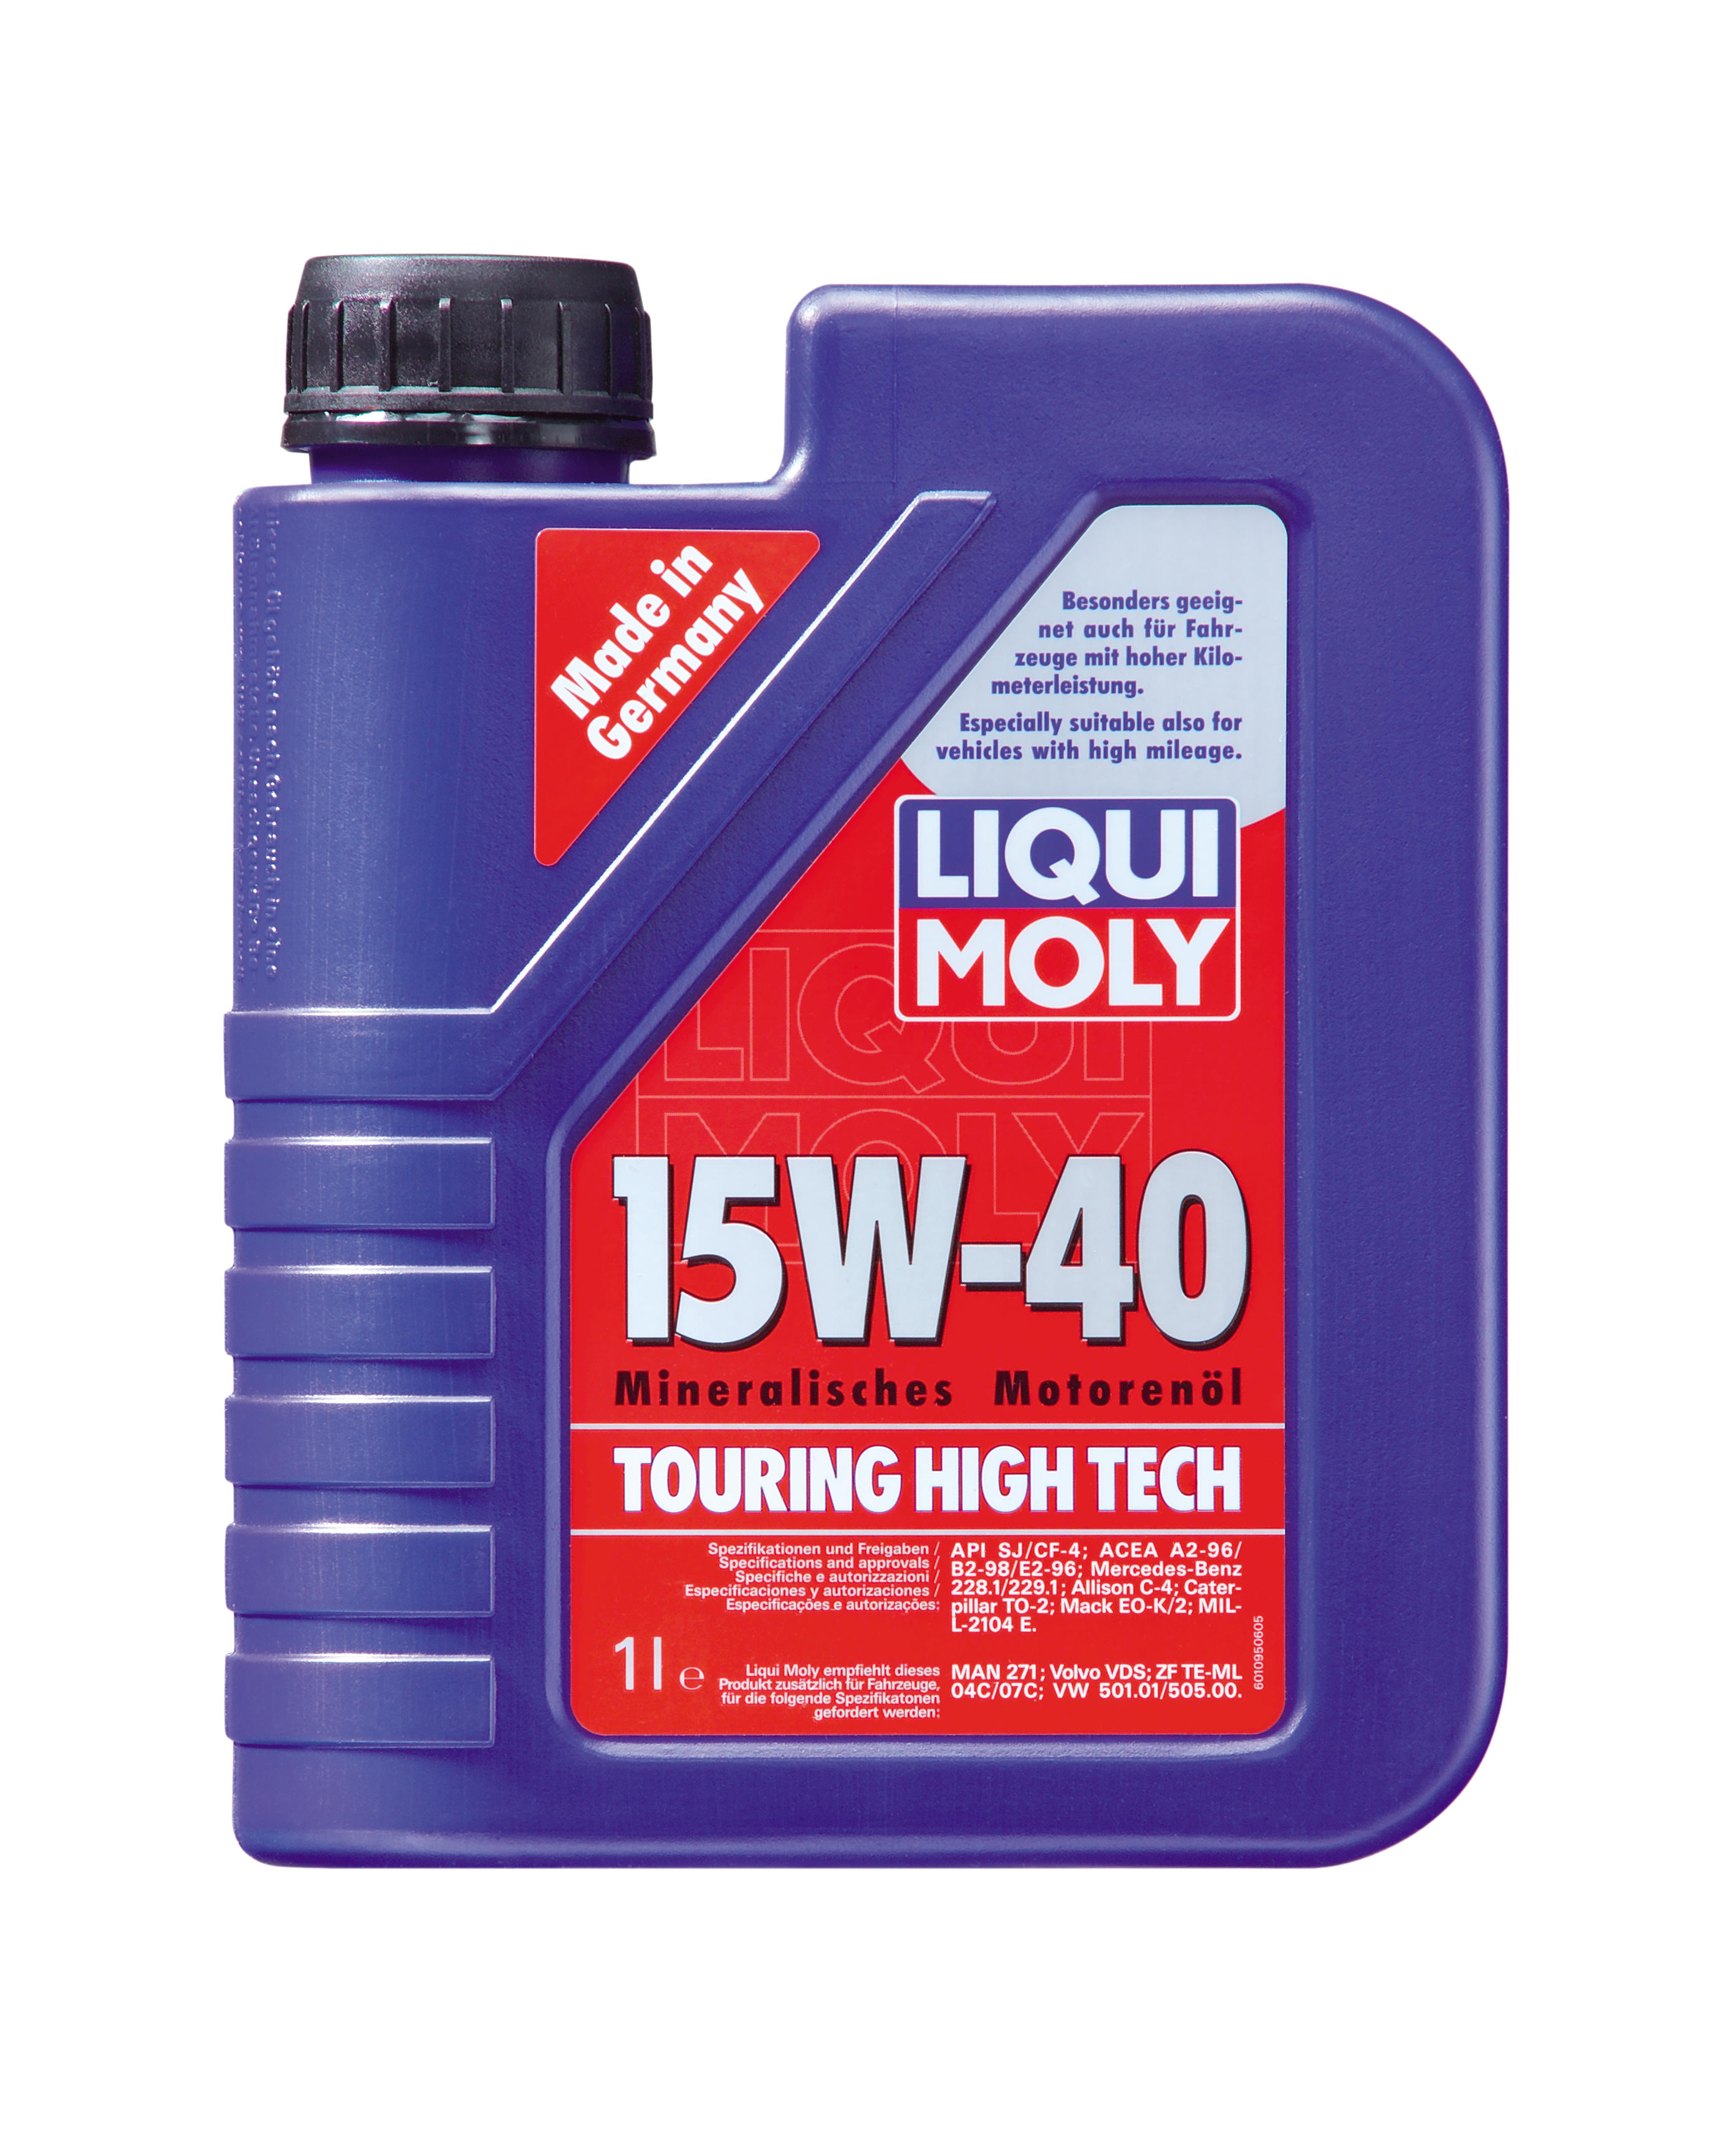 motor l touring high tech 15 w 40 liqui moly motoroel king. Black Bedroom Furniture Sets. Home Design Ideas